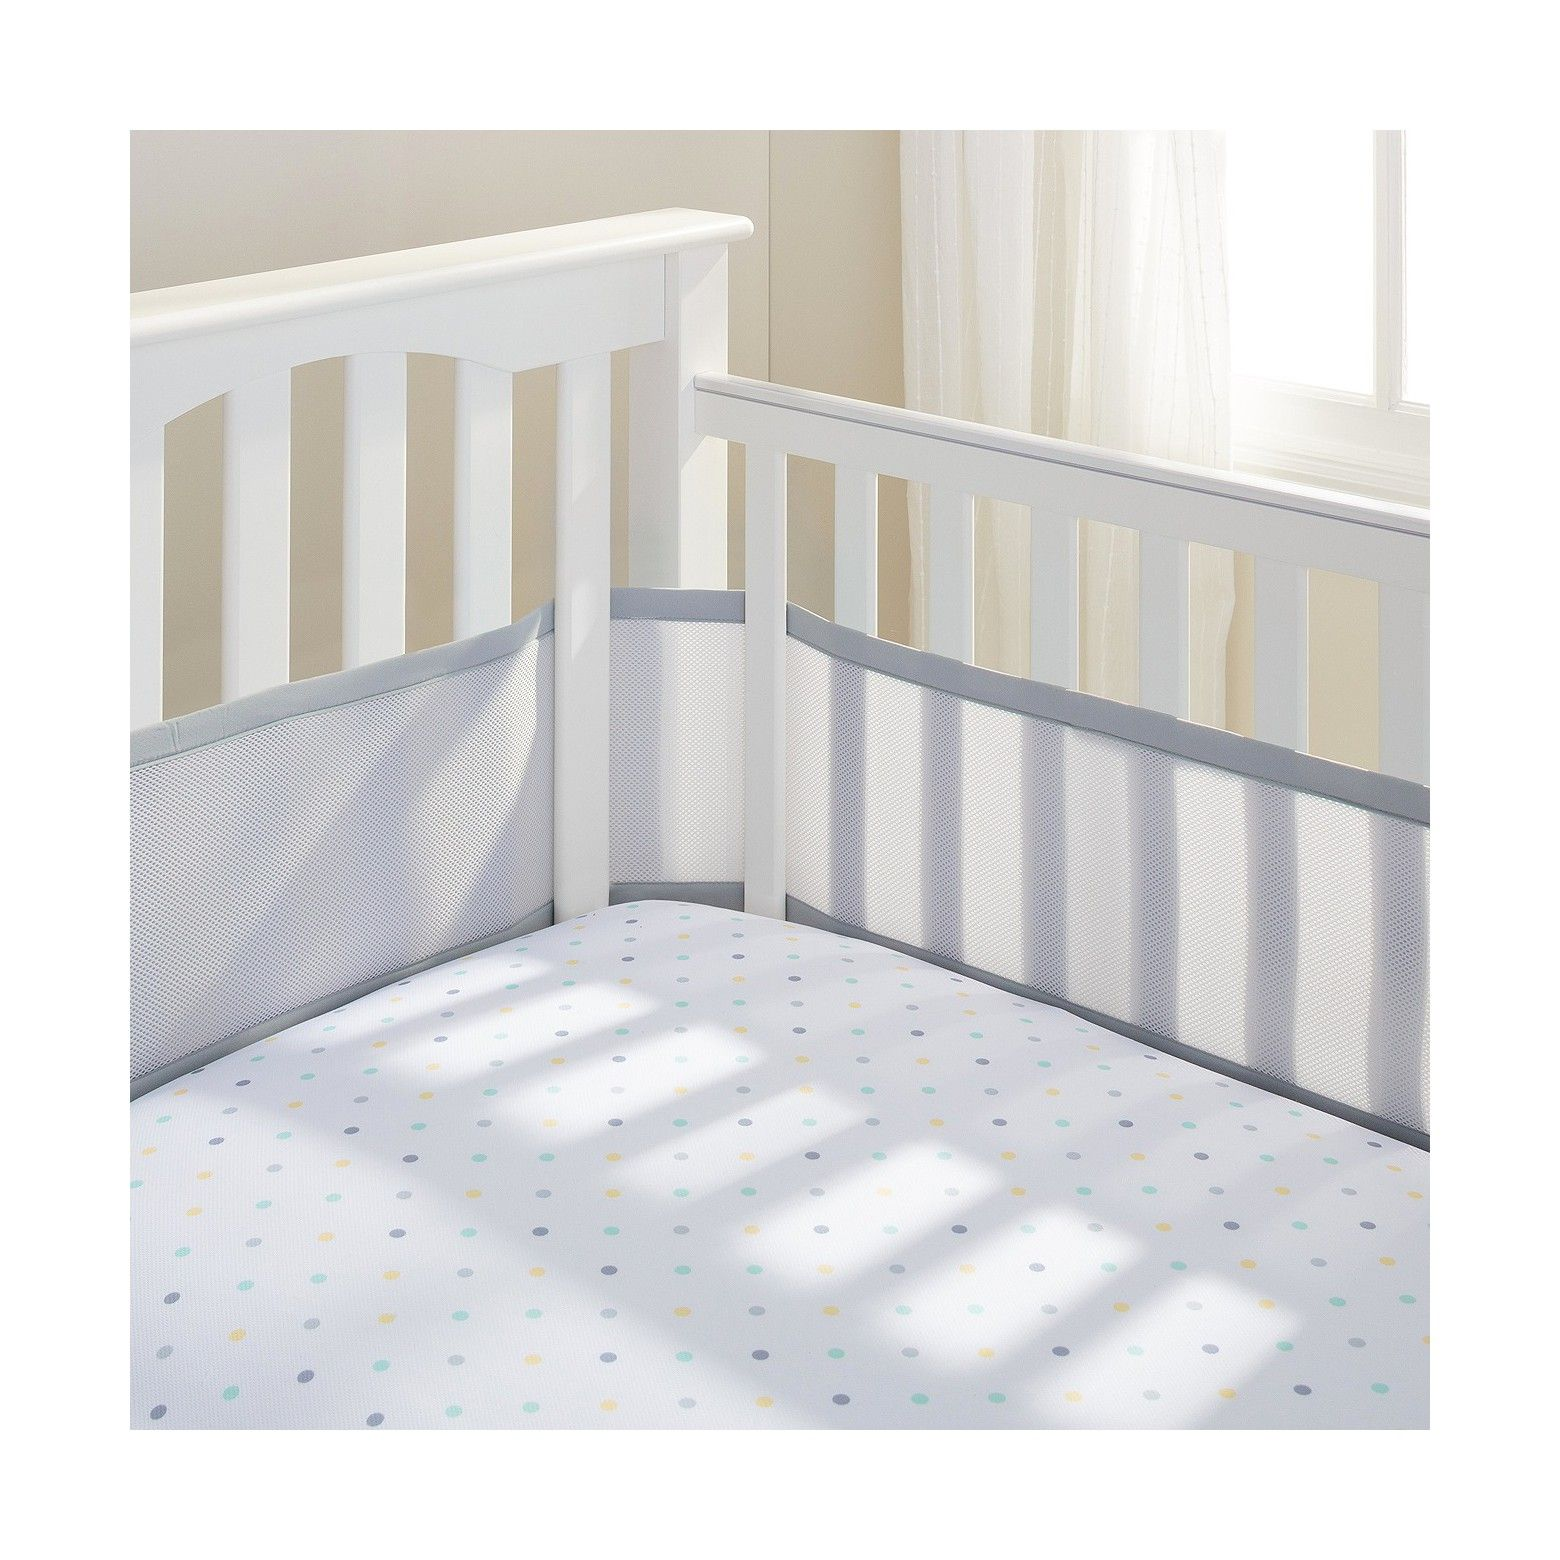 Breathablebaby Classic Breathable Mesh Crib Liners Crib Liners Mesh Crib Bumper Crib Bumper